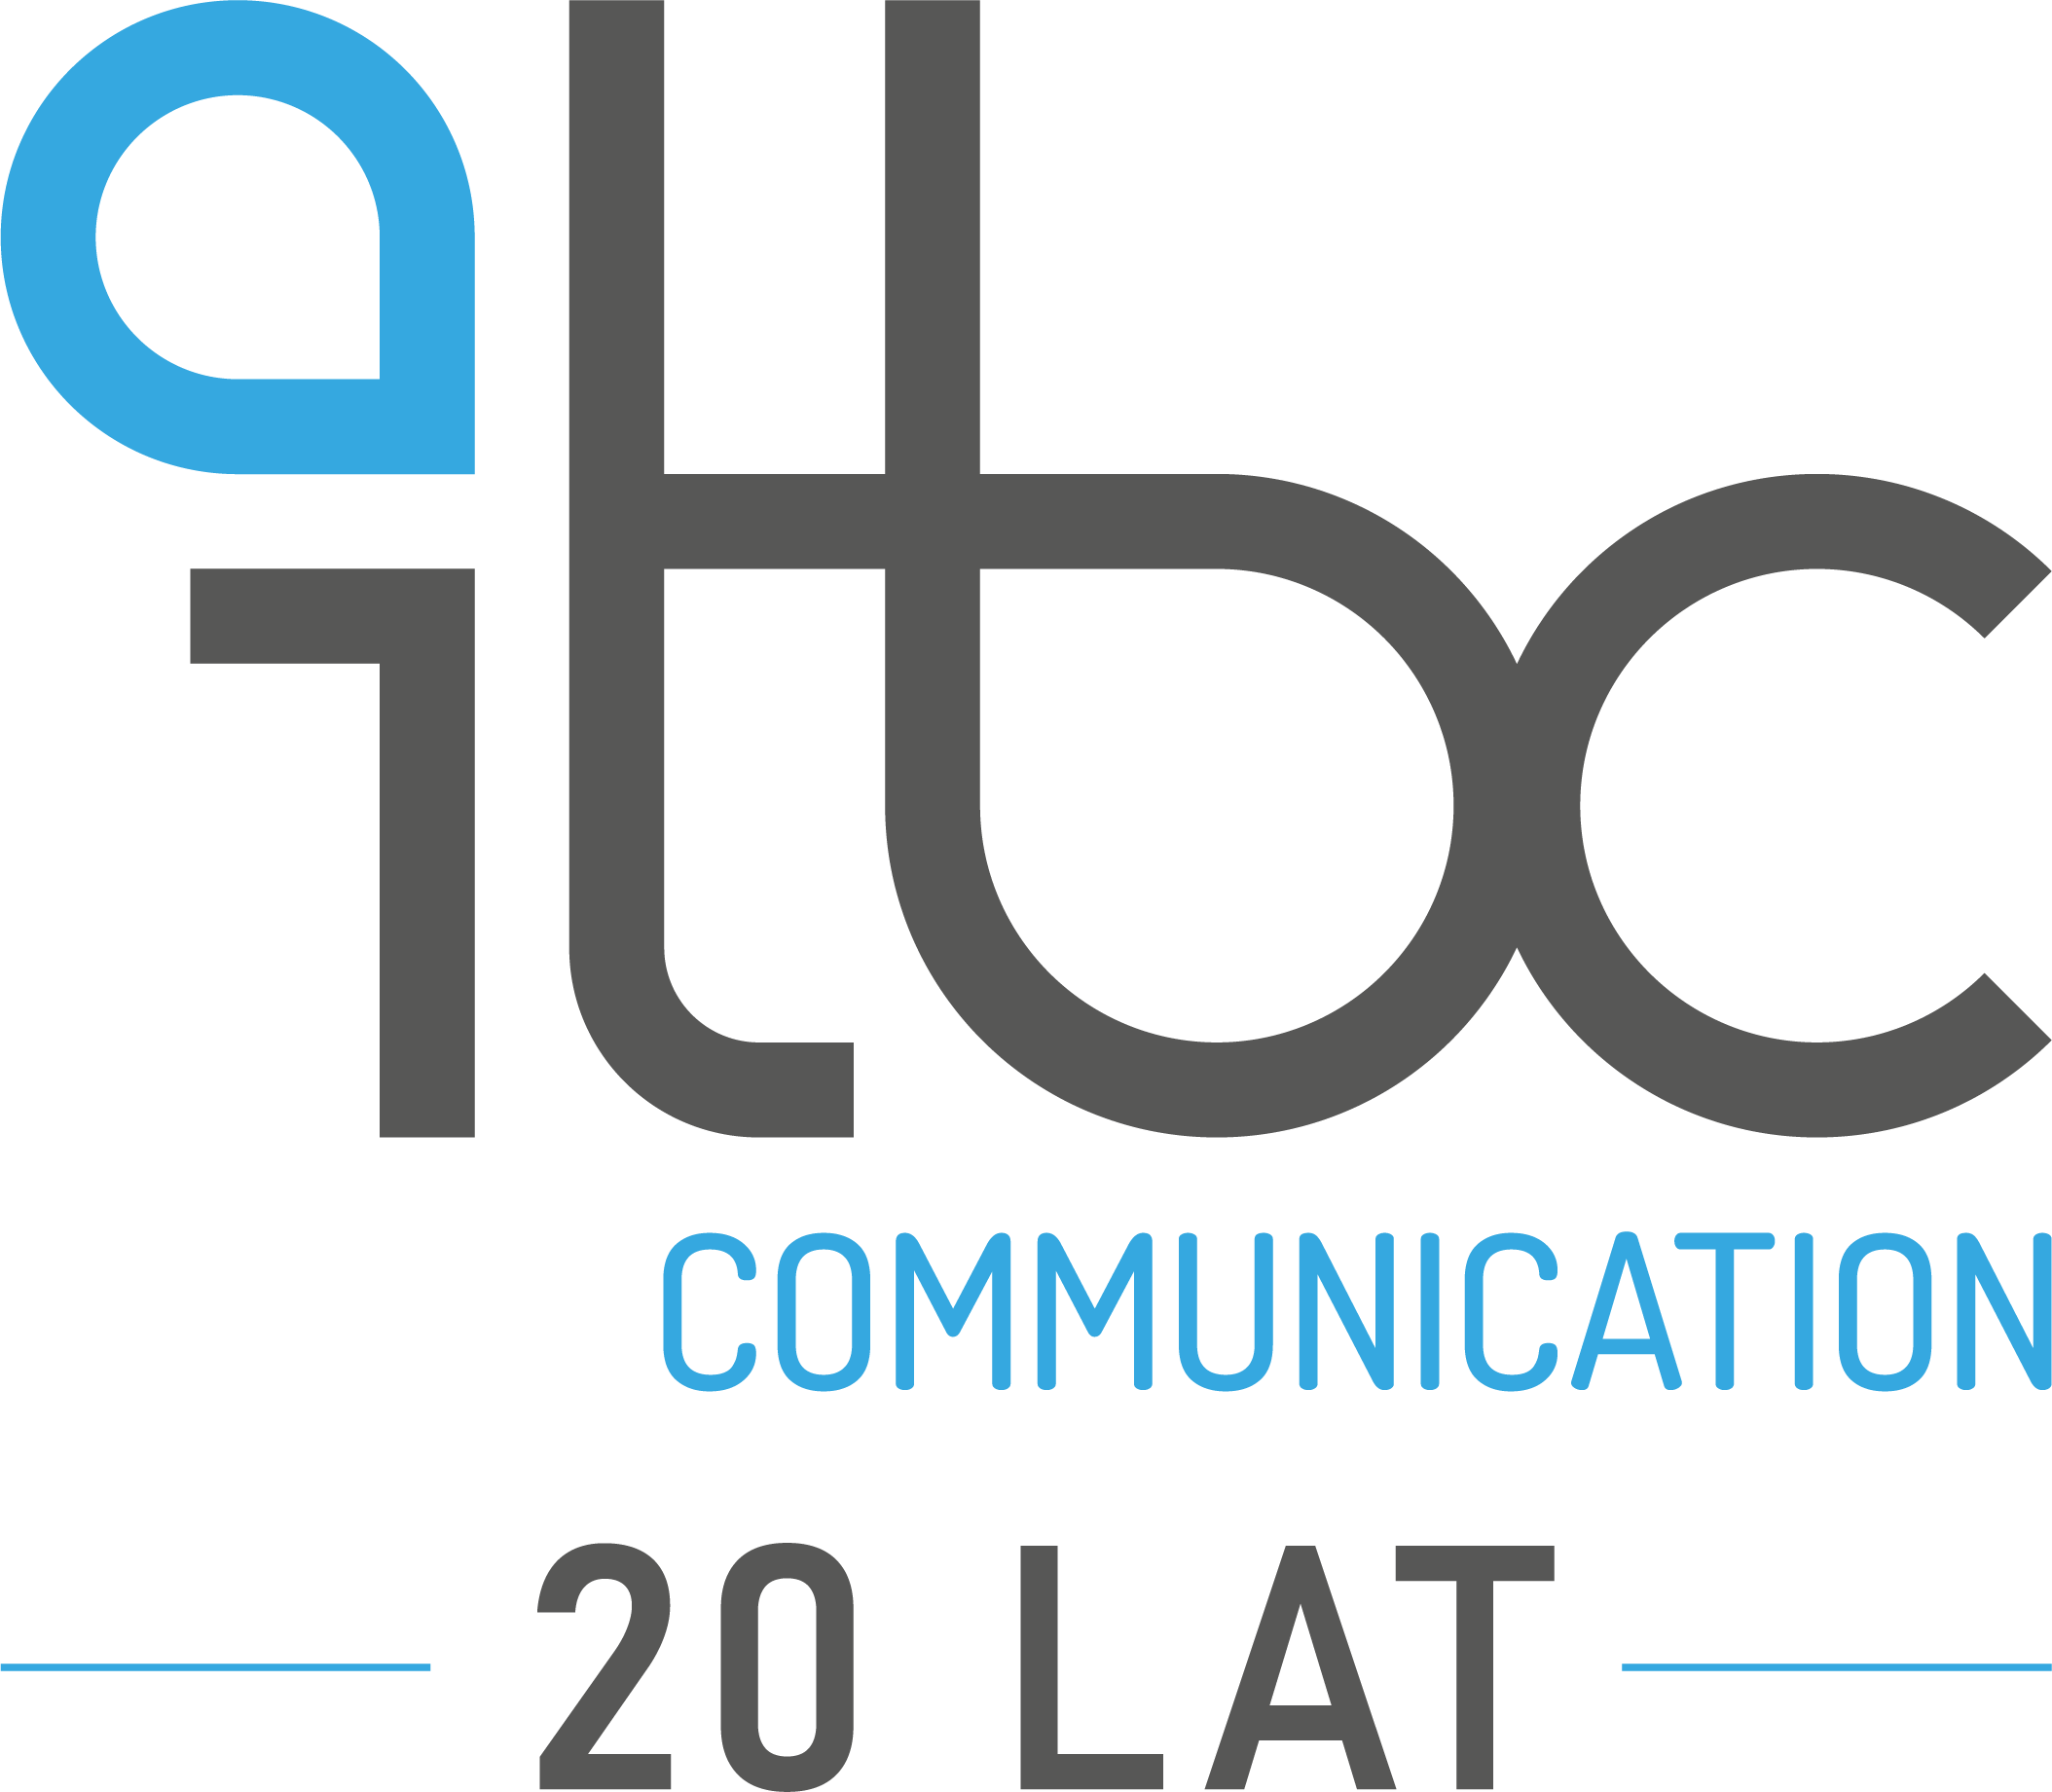 ITBC Communication